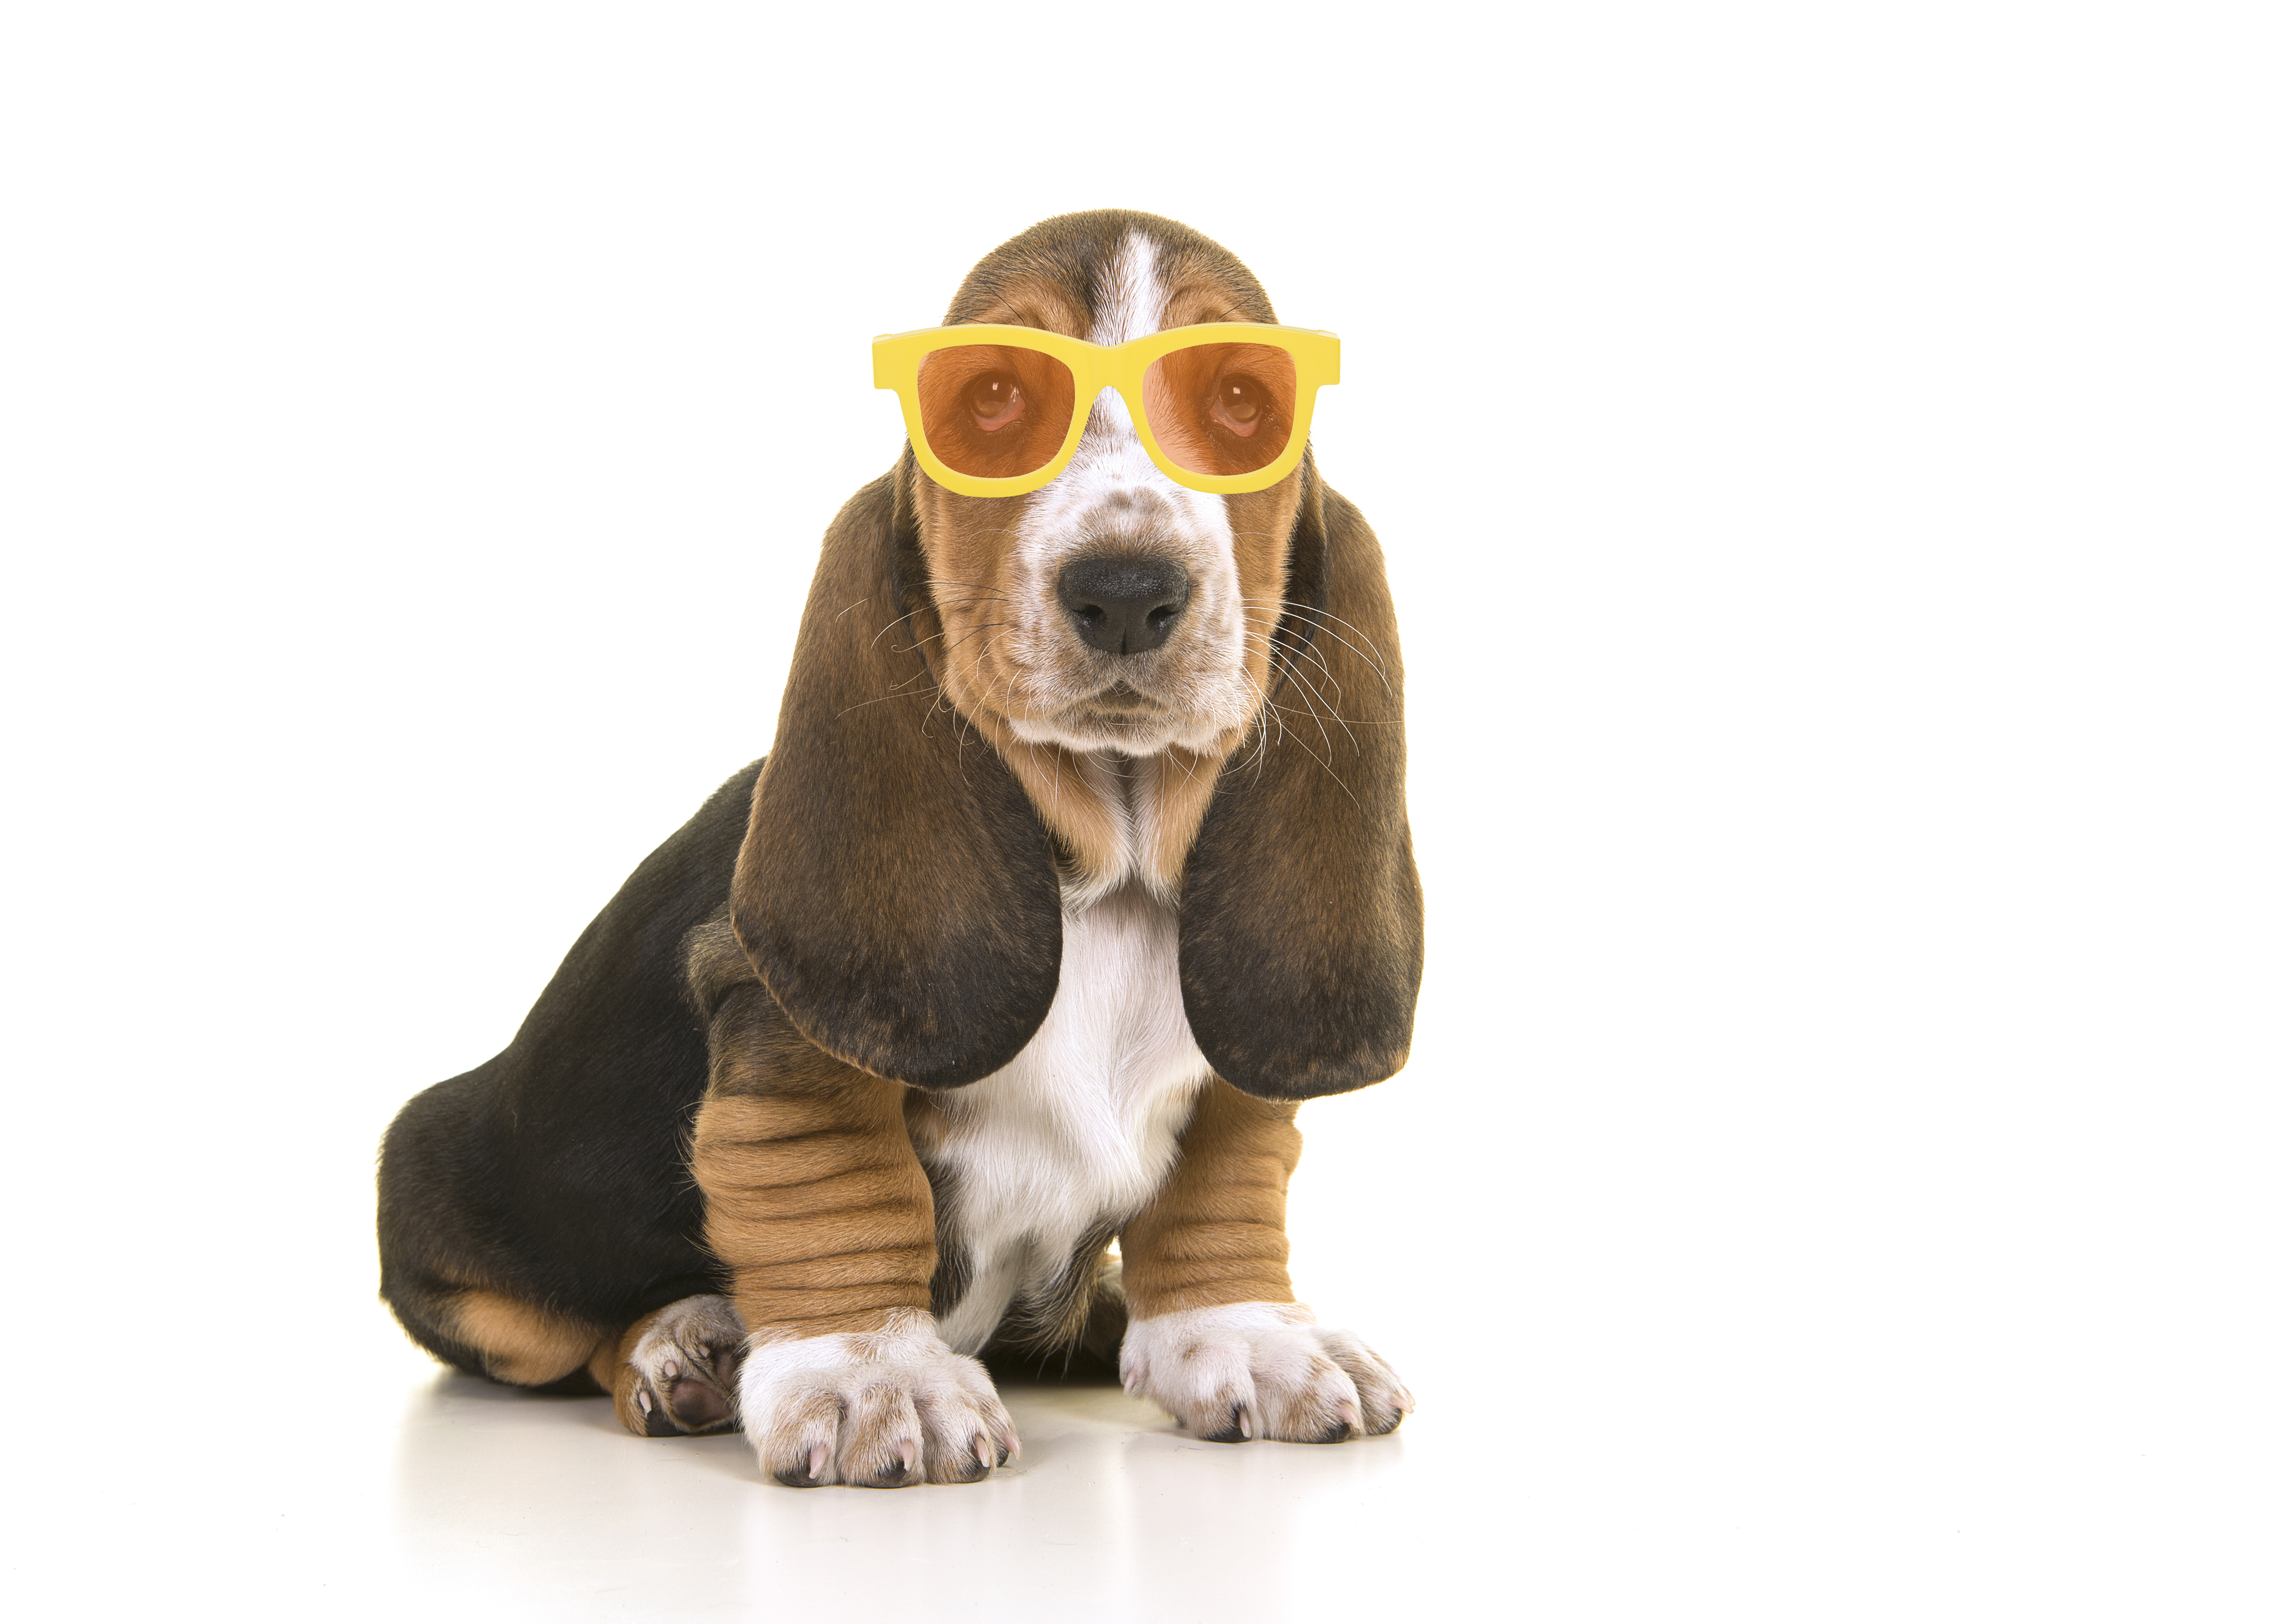 Cute sitting tricolor basset hound puppy wearing yellow and orange sunglasses on a white background